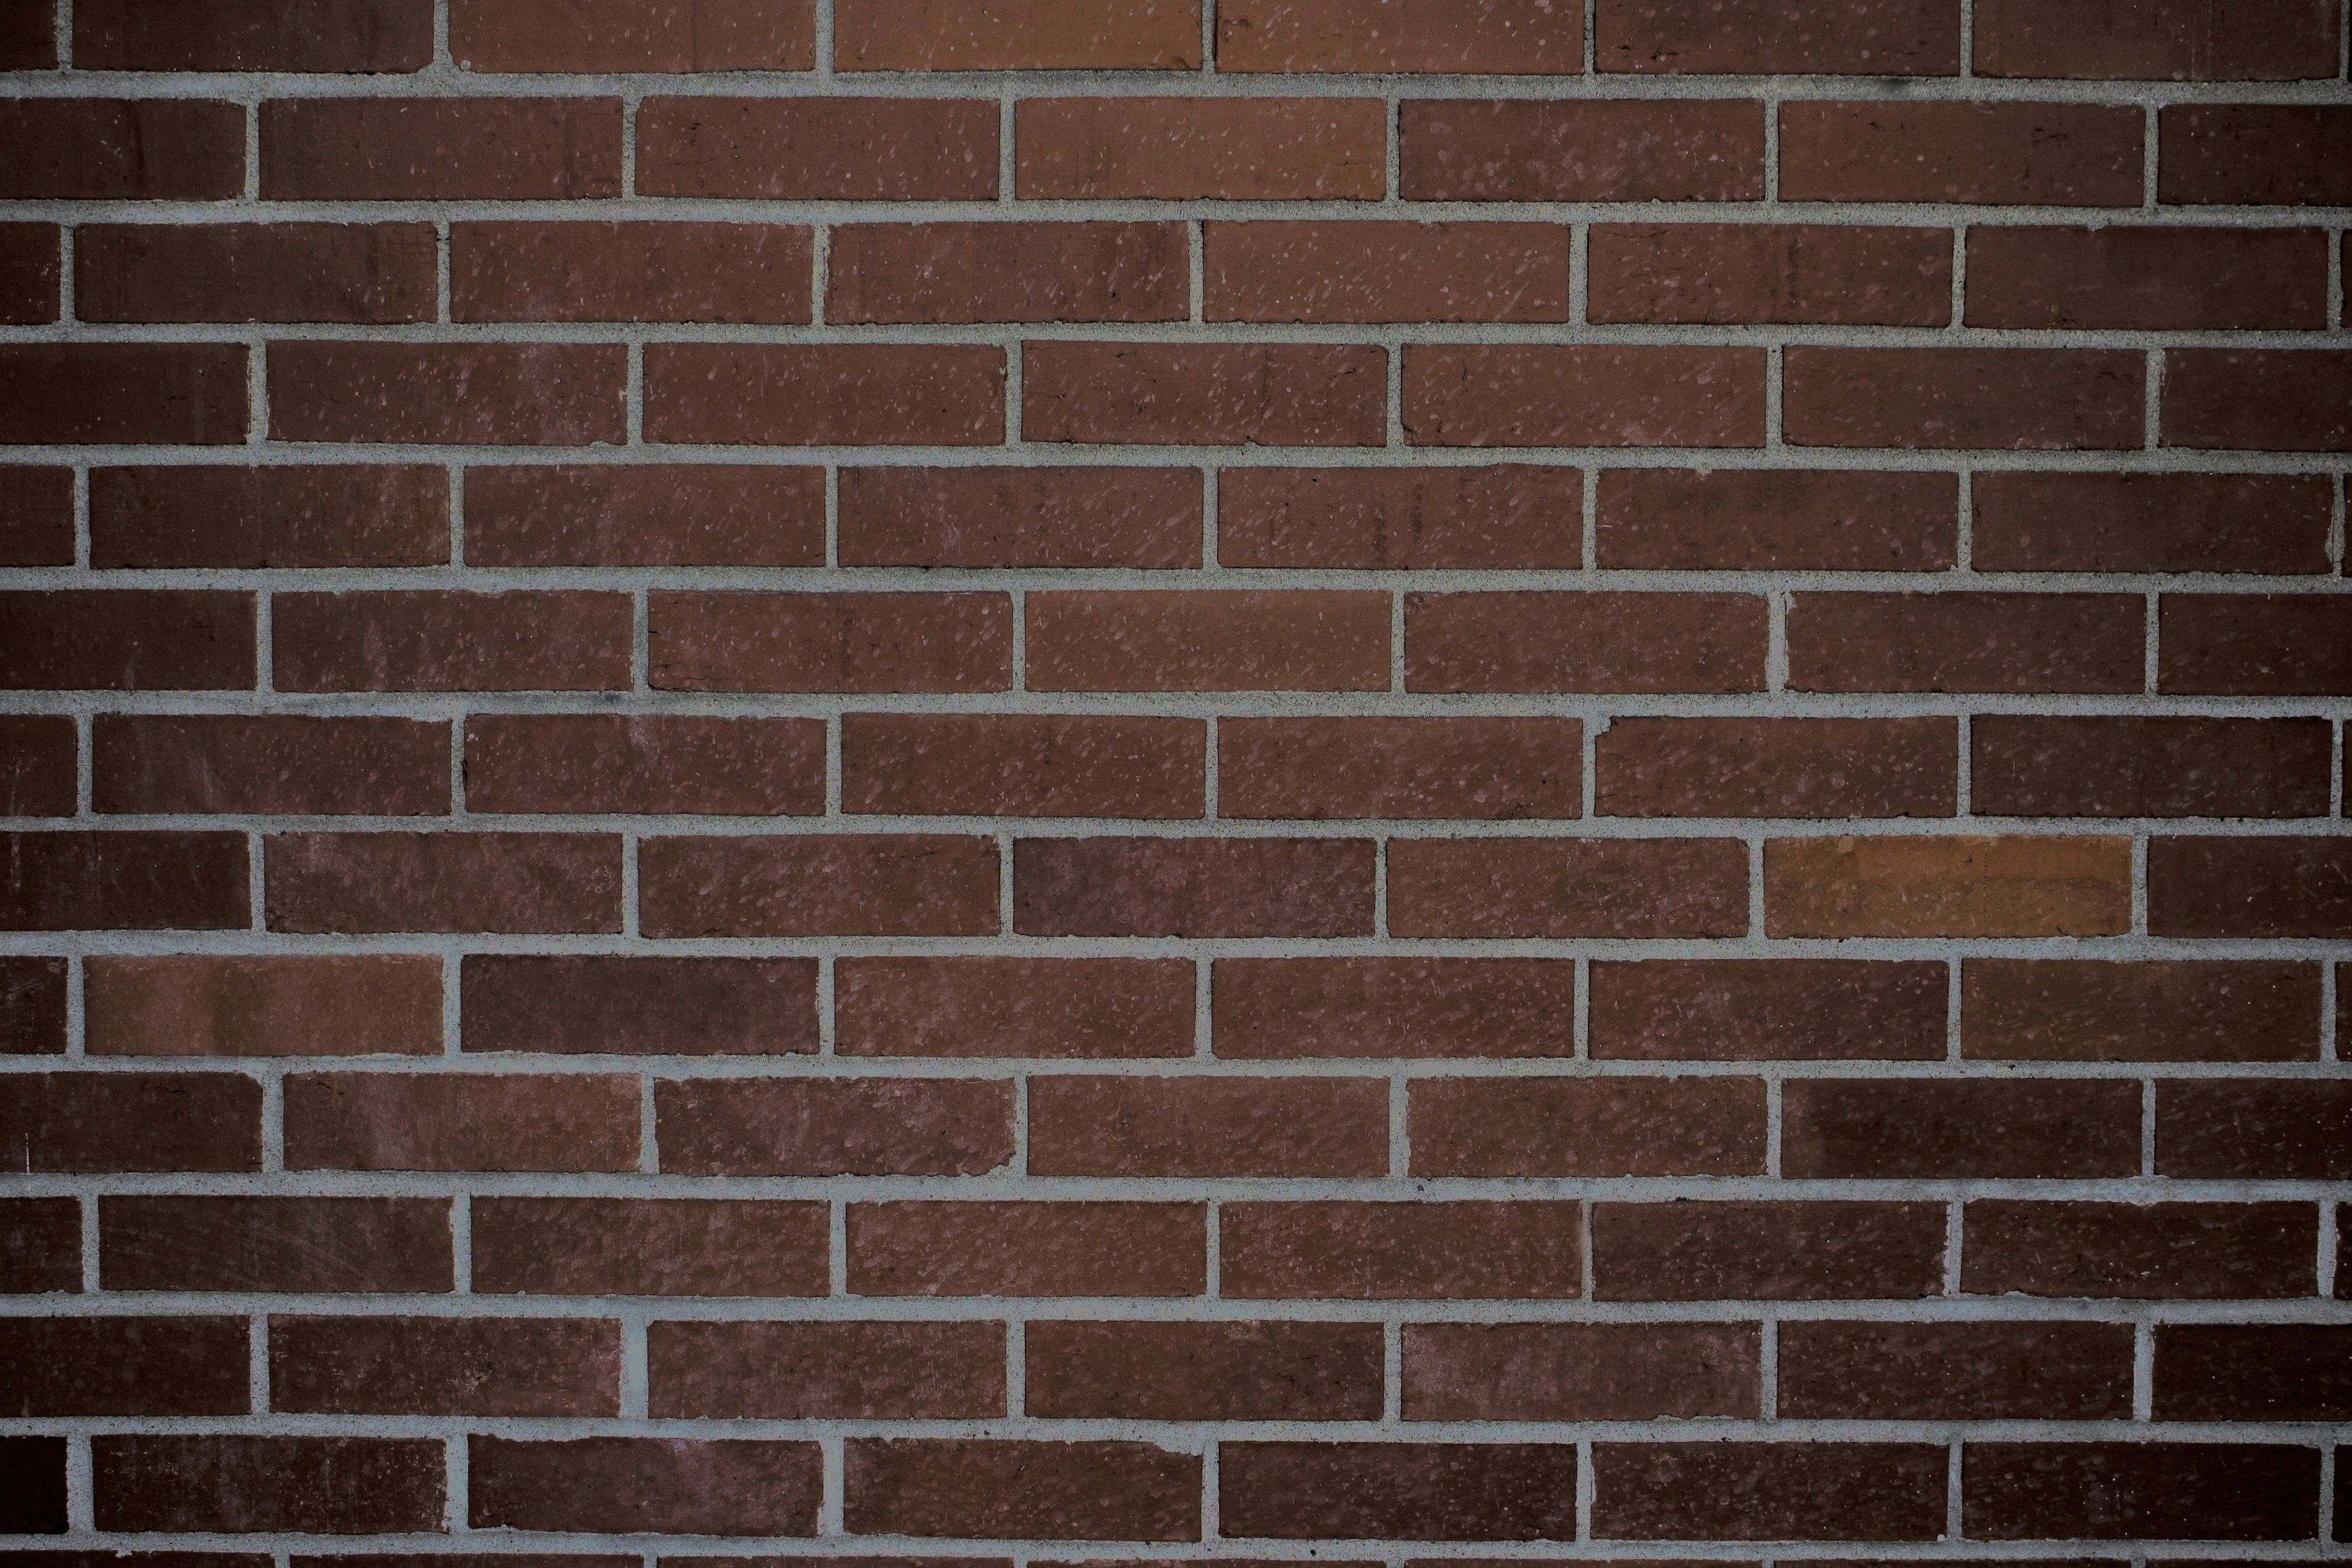 Dark Brown Brick Wall Texture.